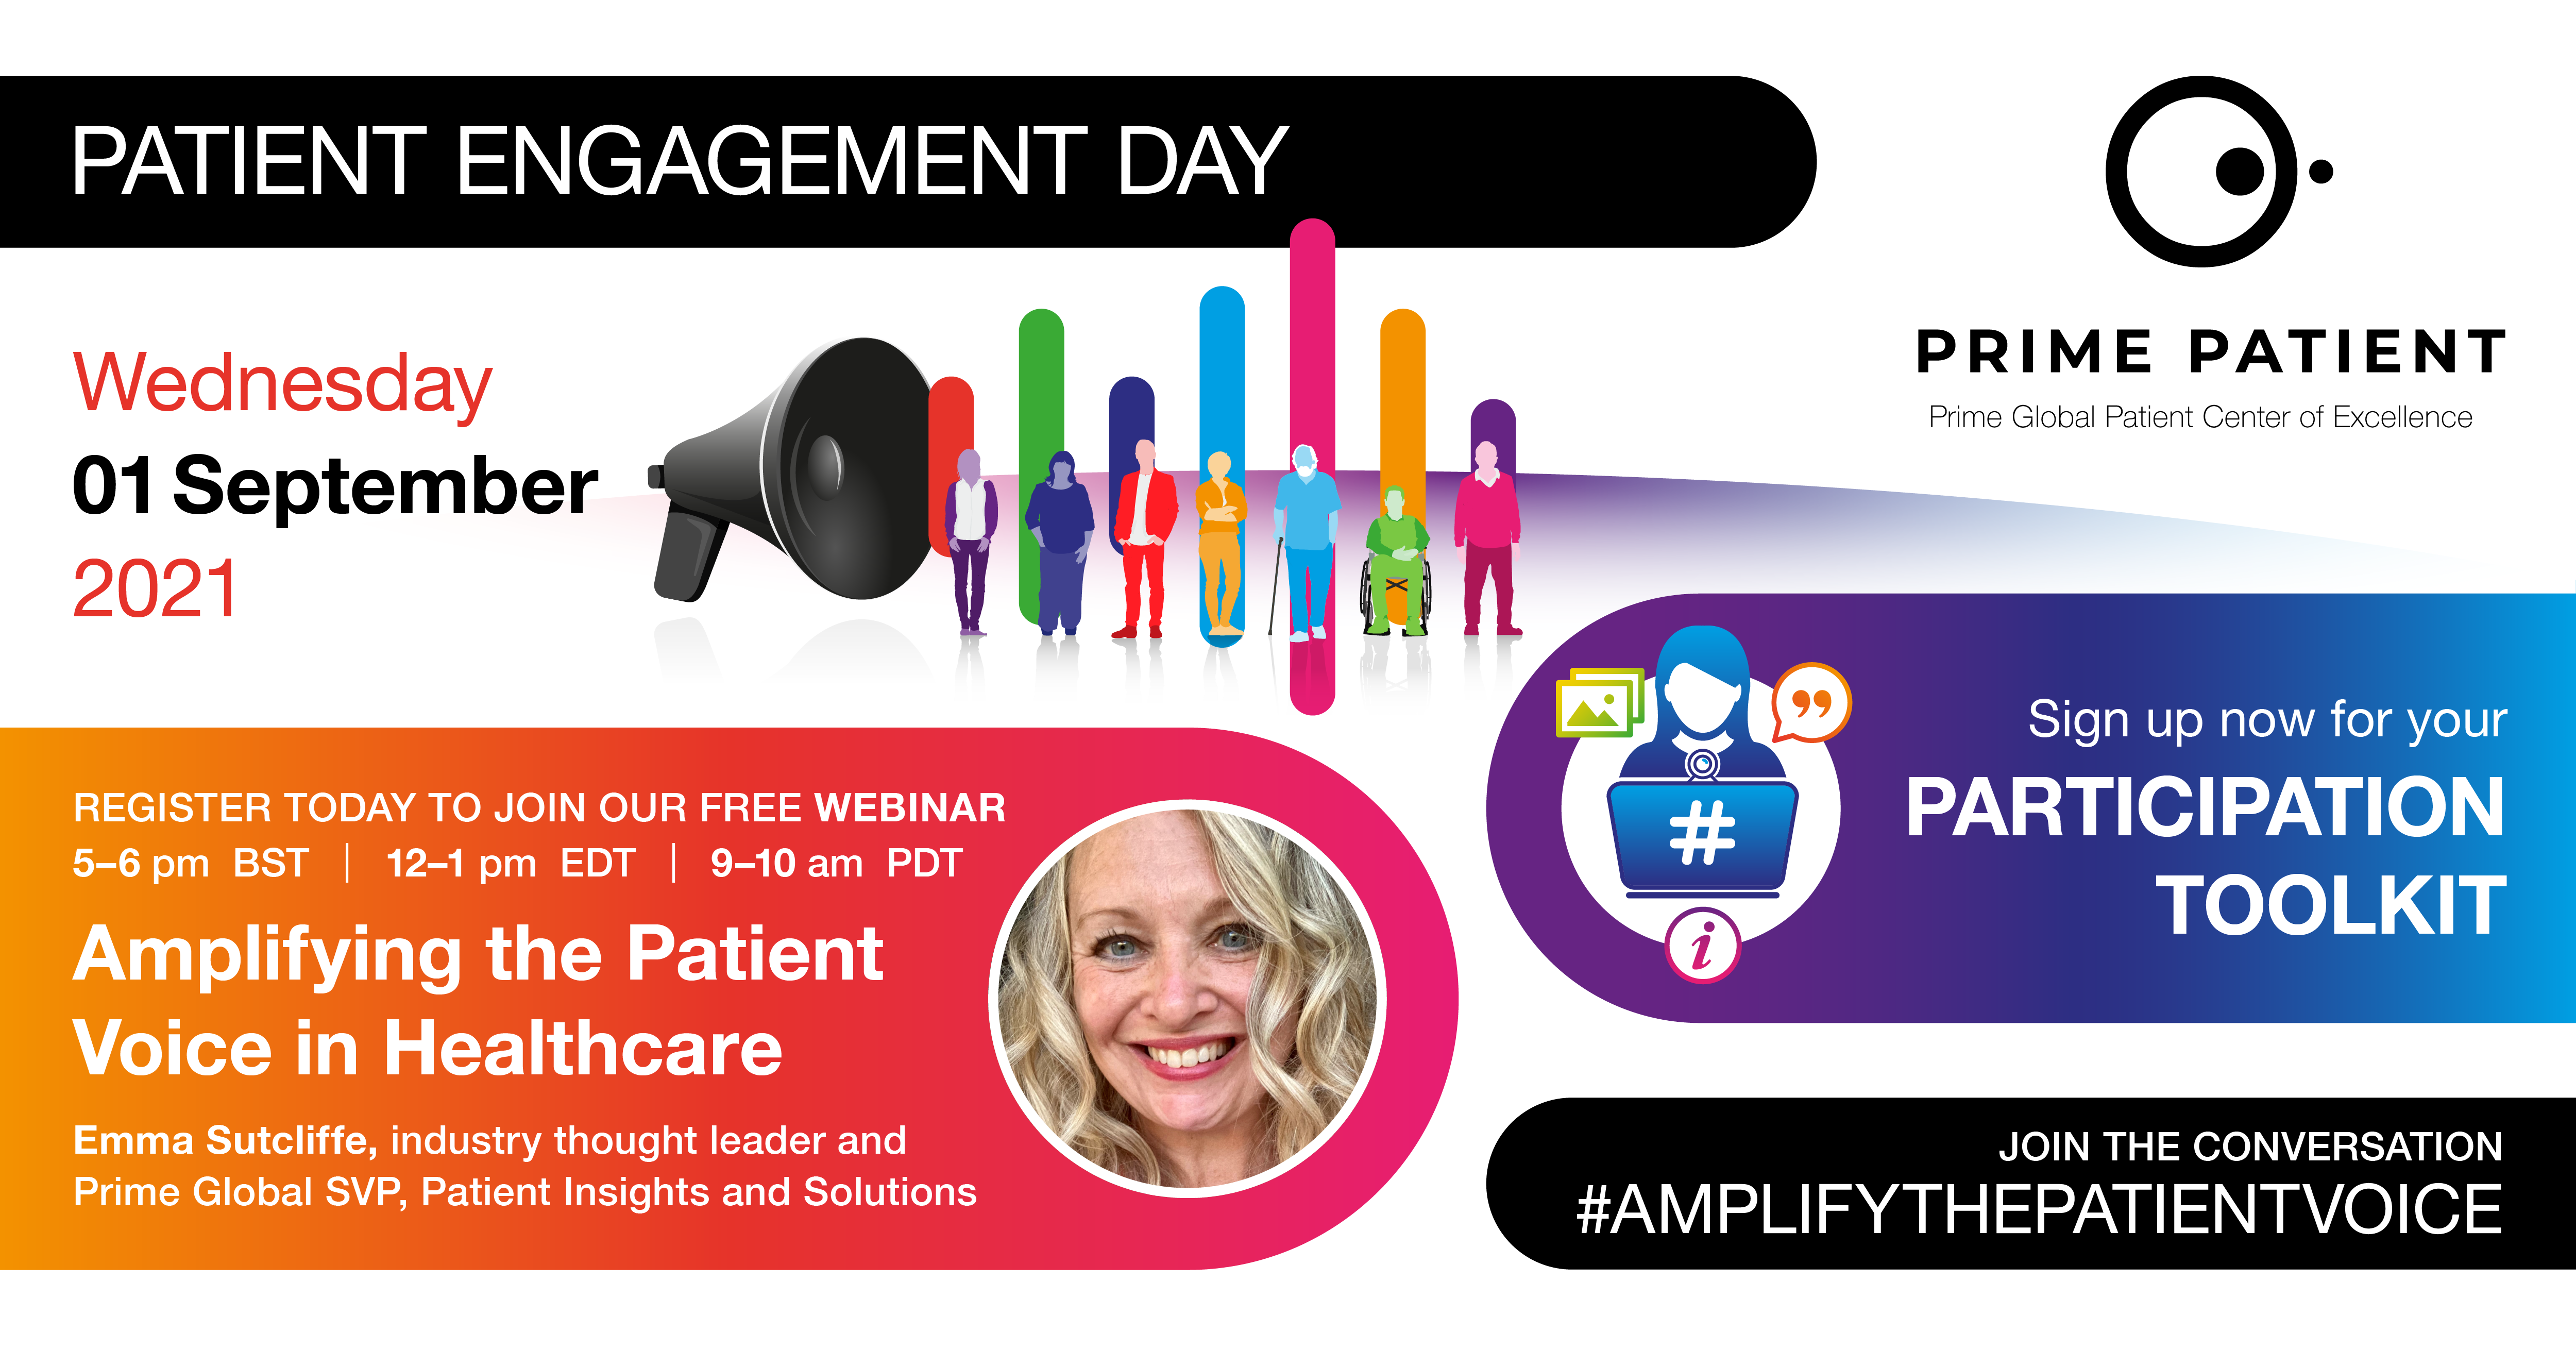 NEW-Patient-Engagement-Day.png